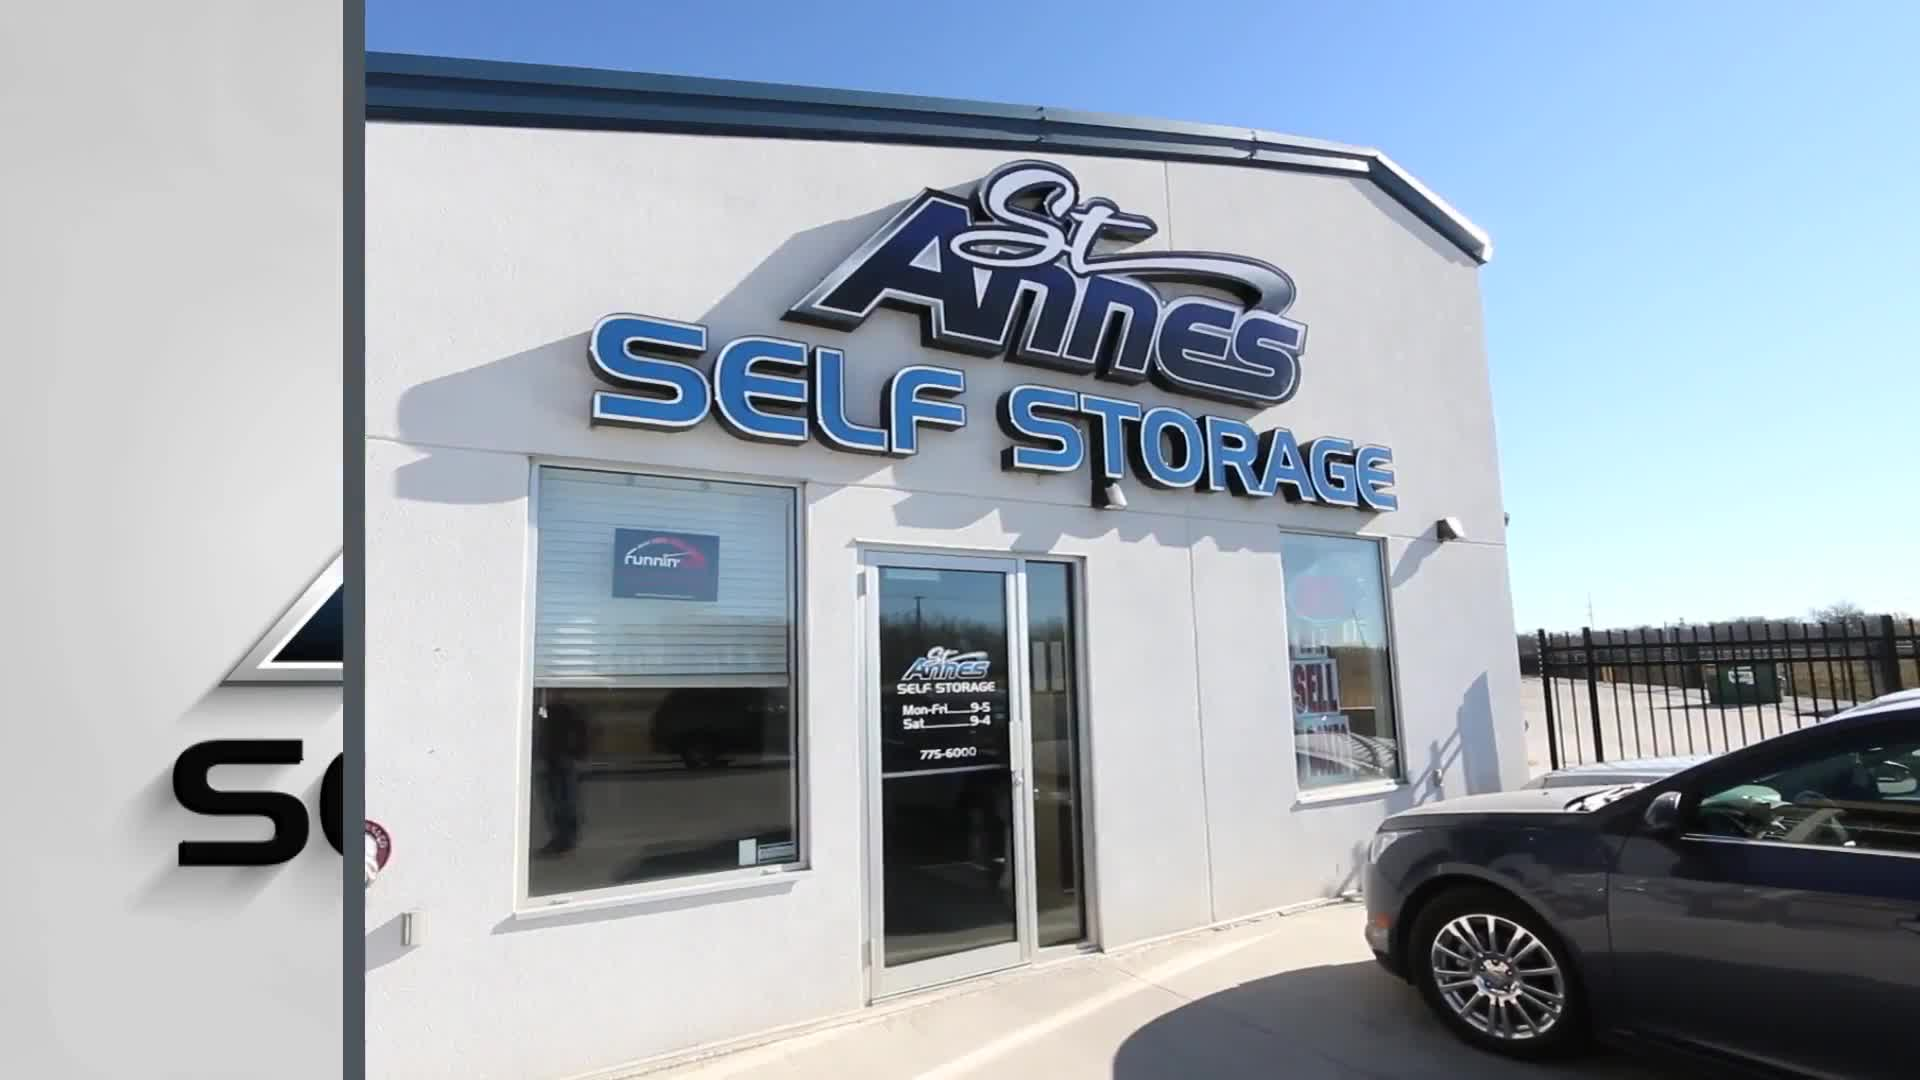 St Anne's Self Storage - Moving Services & Storage Facilities - 2047756000